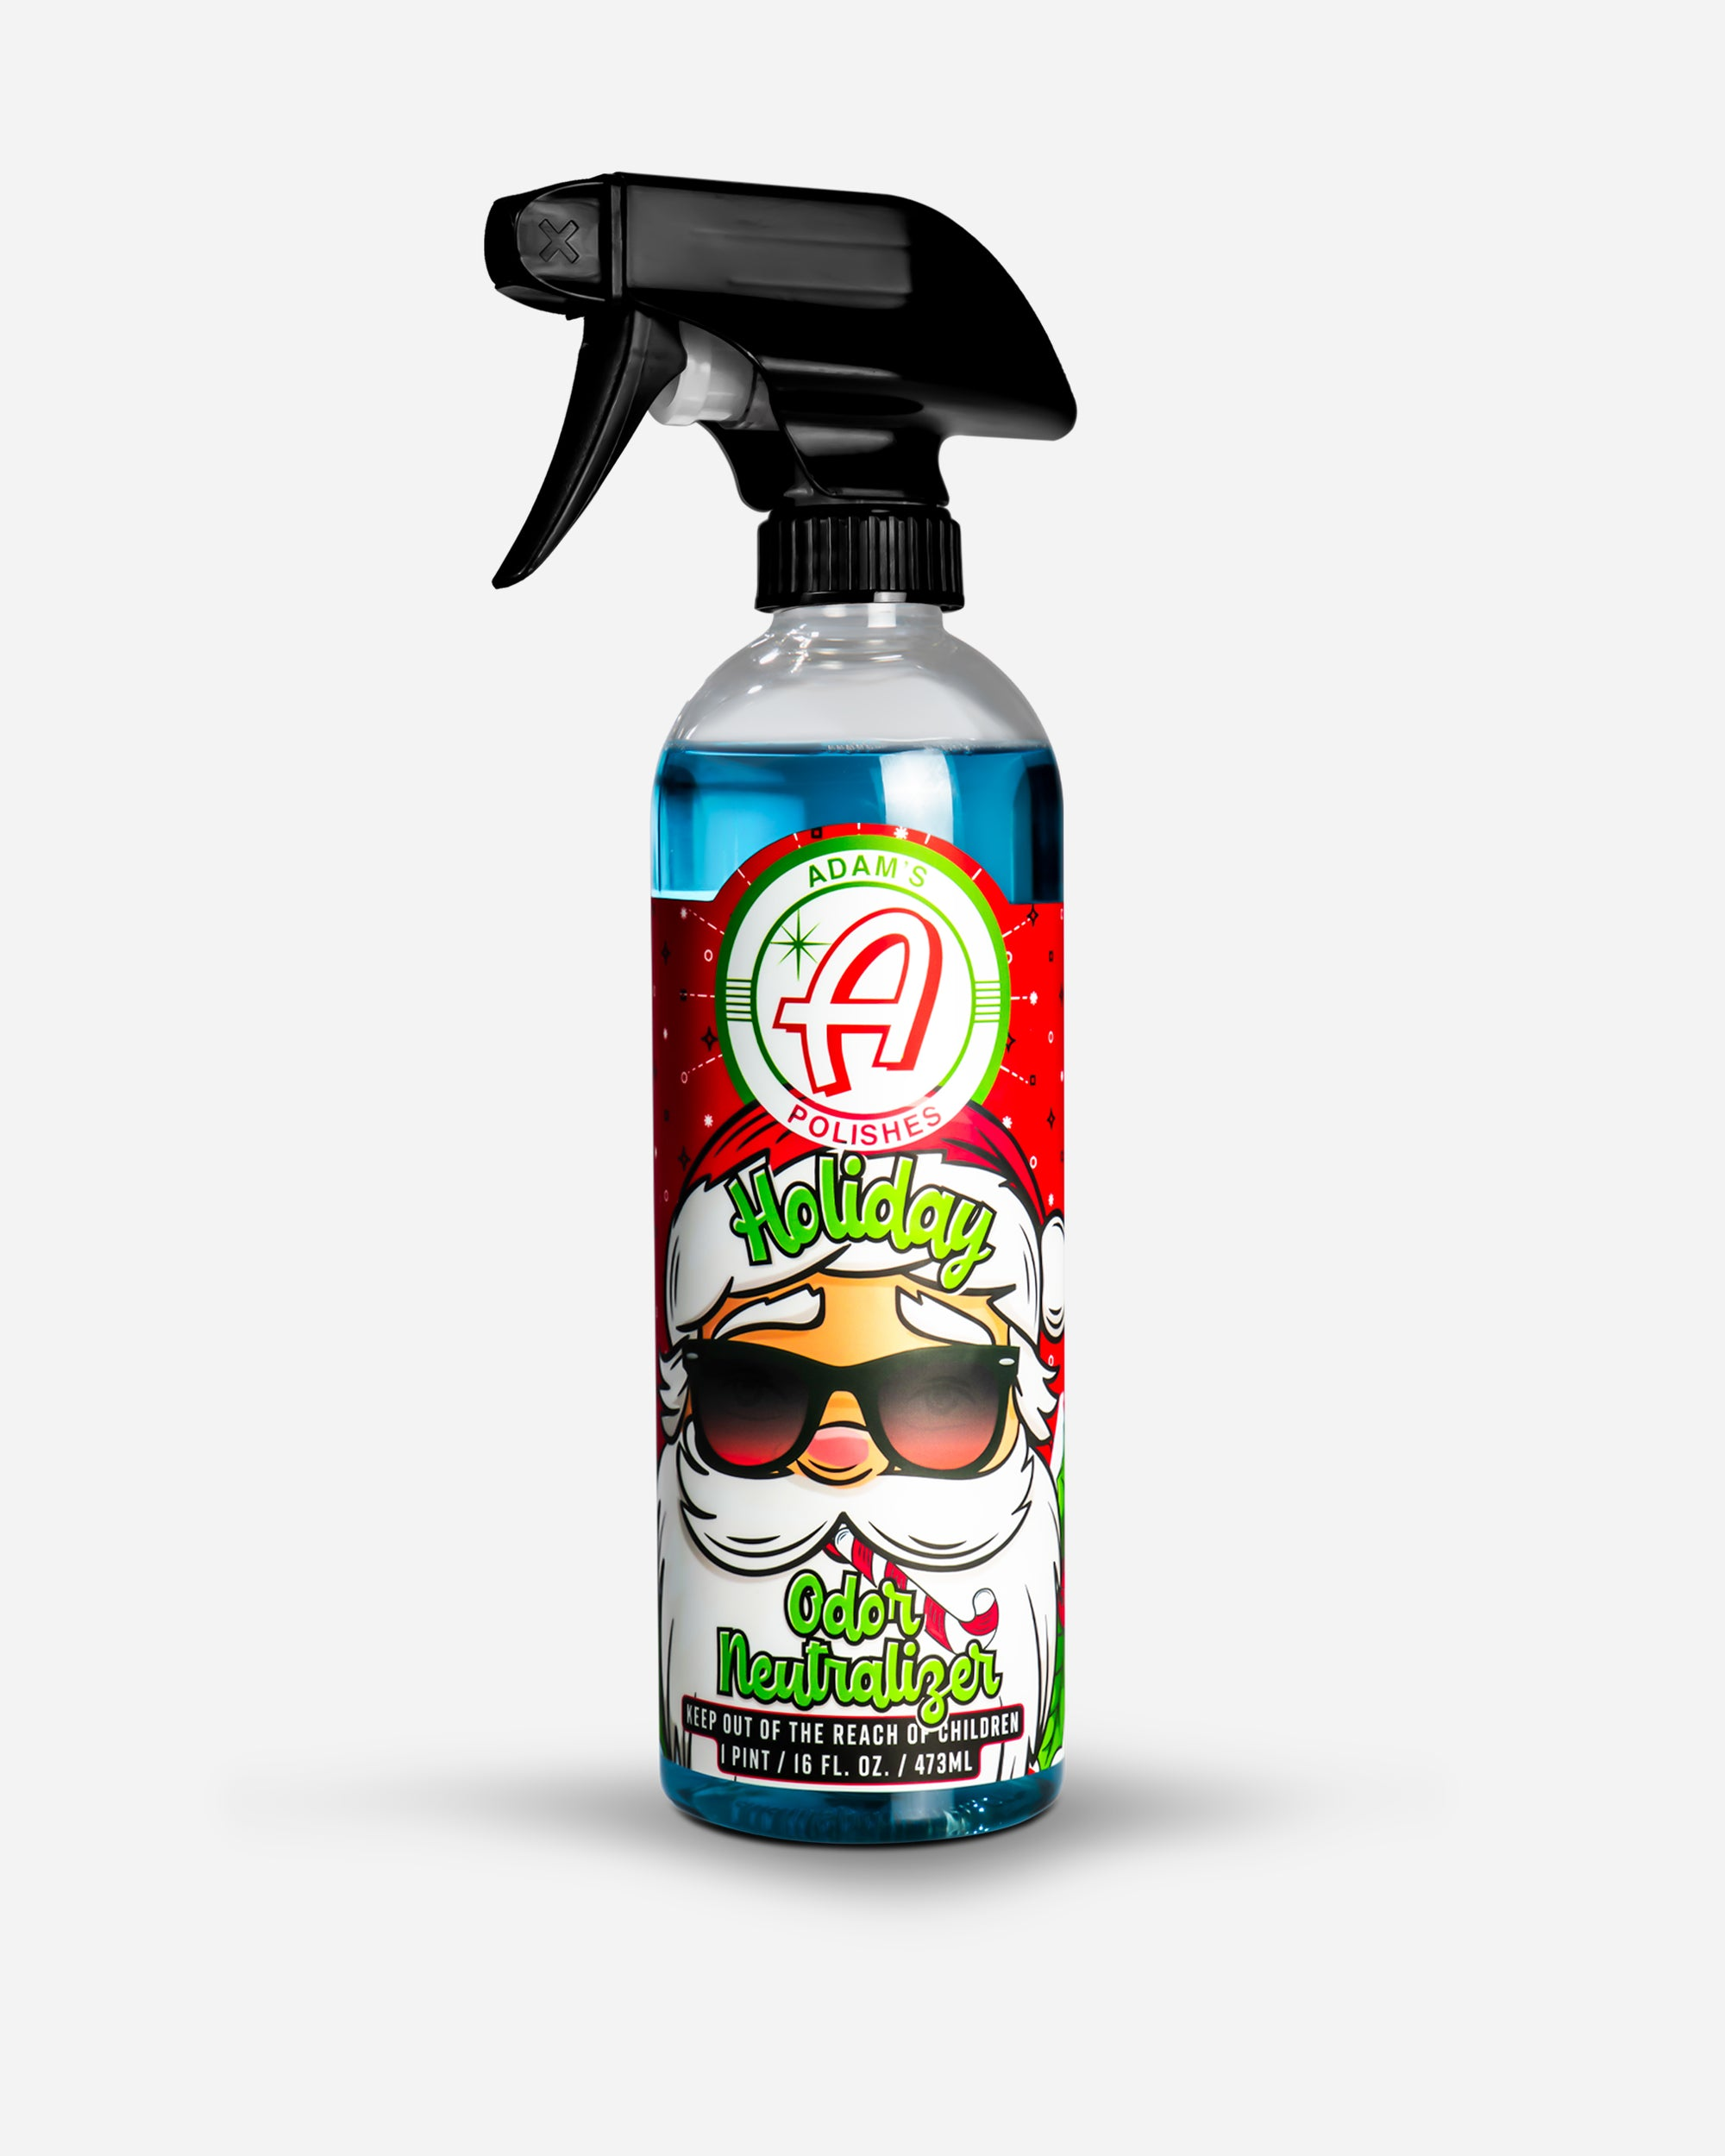 Adam's Santa Odor Neutralizer